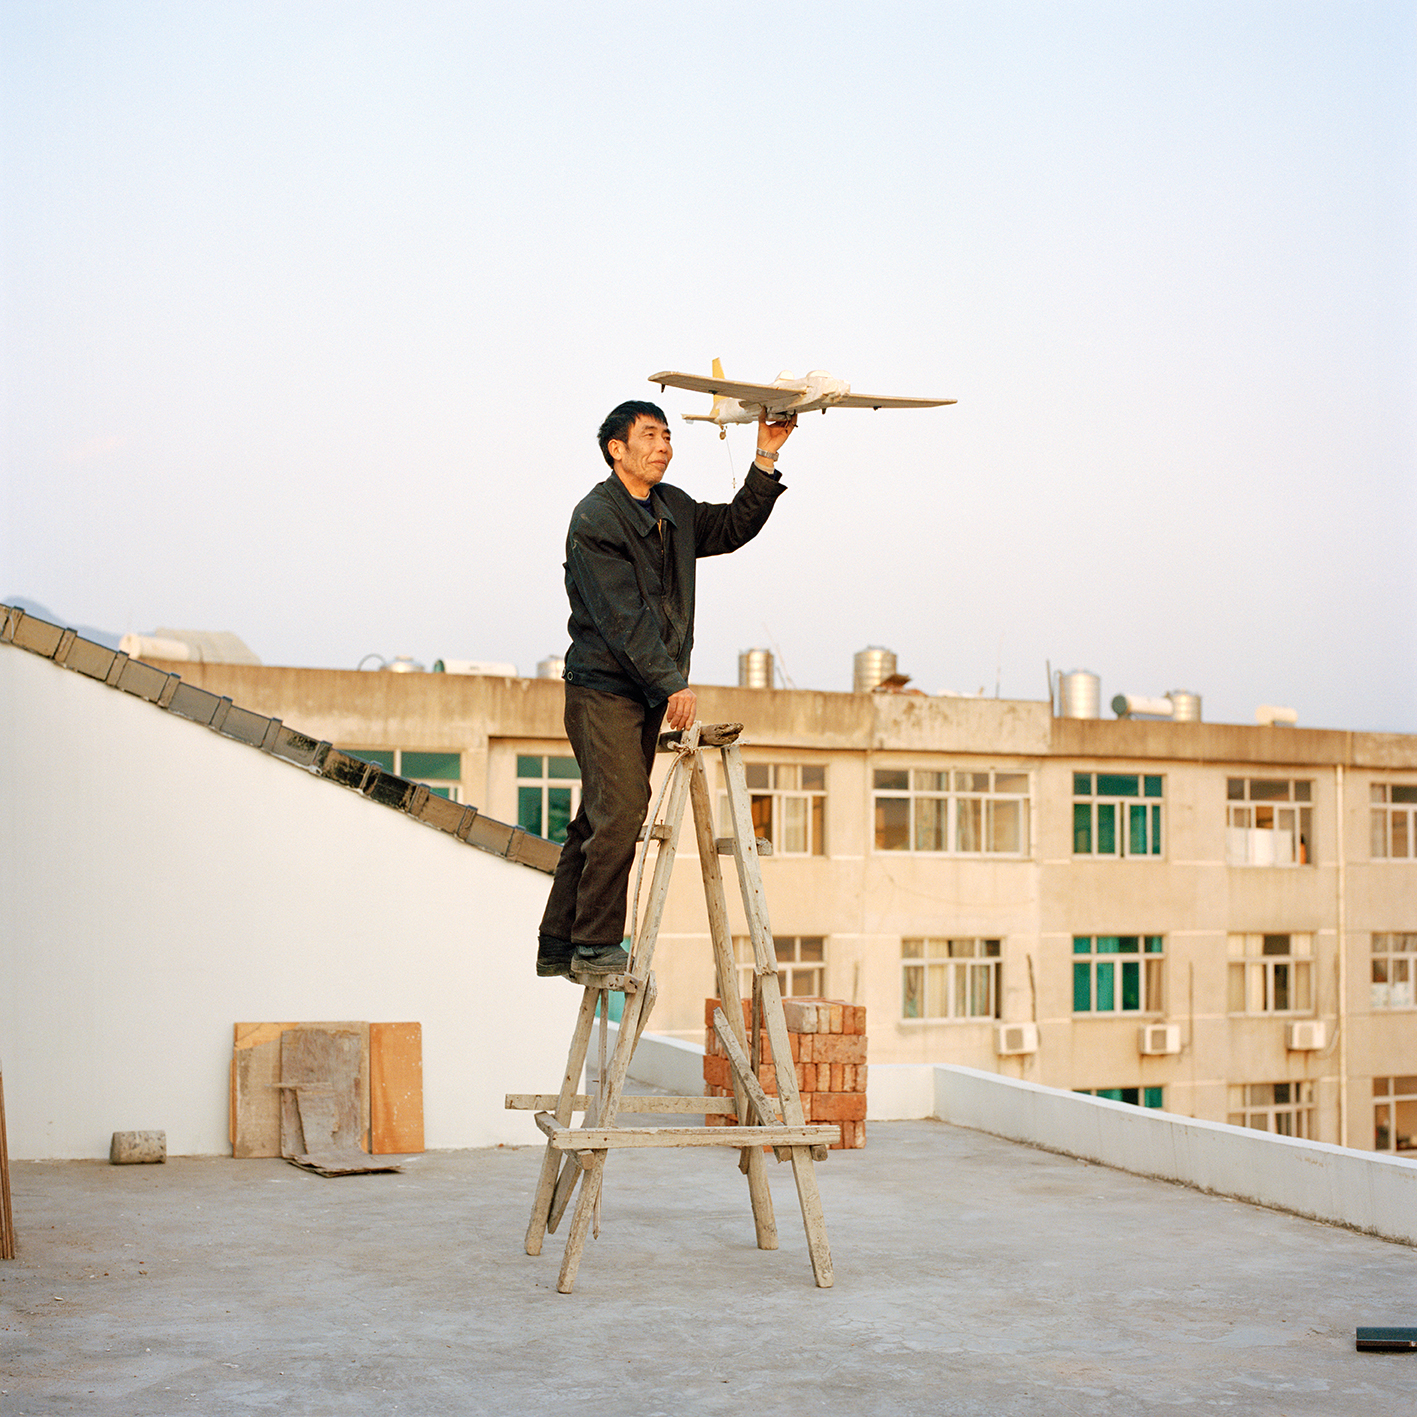 xiaoxiao-xu-aeronautics-in-the-backyards-2015-photography-of-china-32.jpg